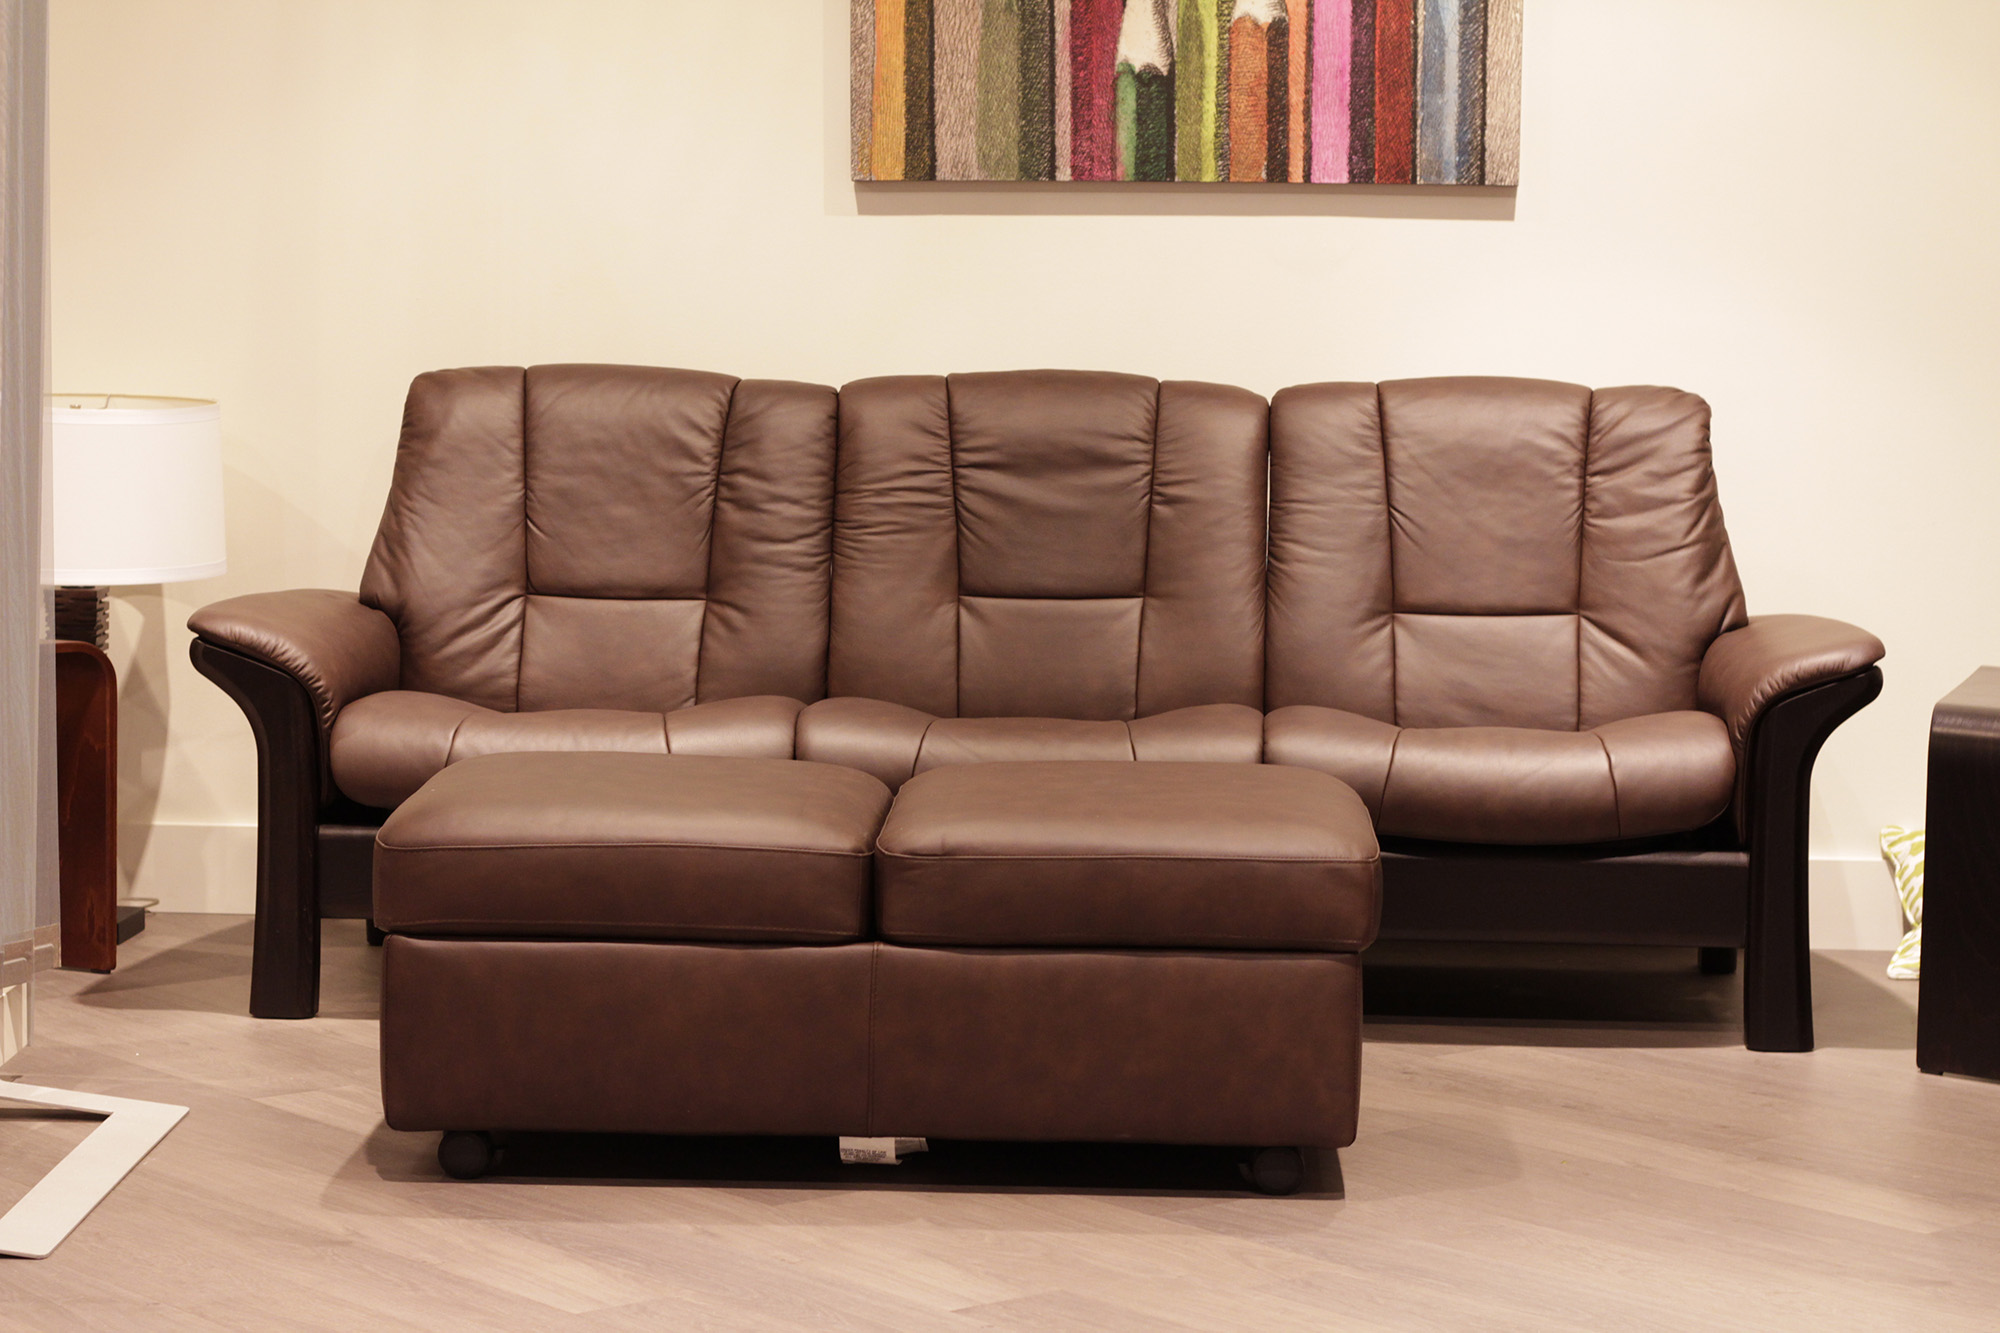 Stressless Sofa 600 Stressless Buckingham 3 Seat Low Back Sofa Paloma Chocolate Leather By Ekornes